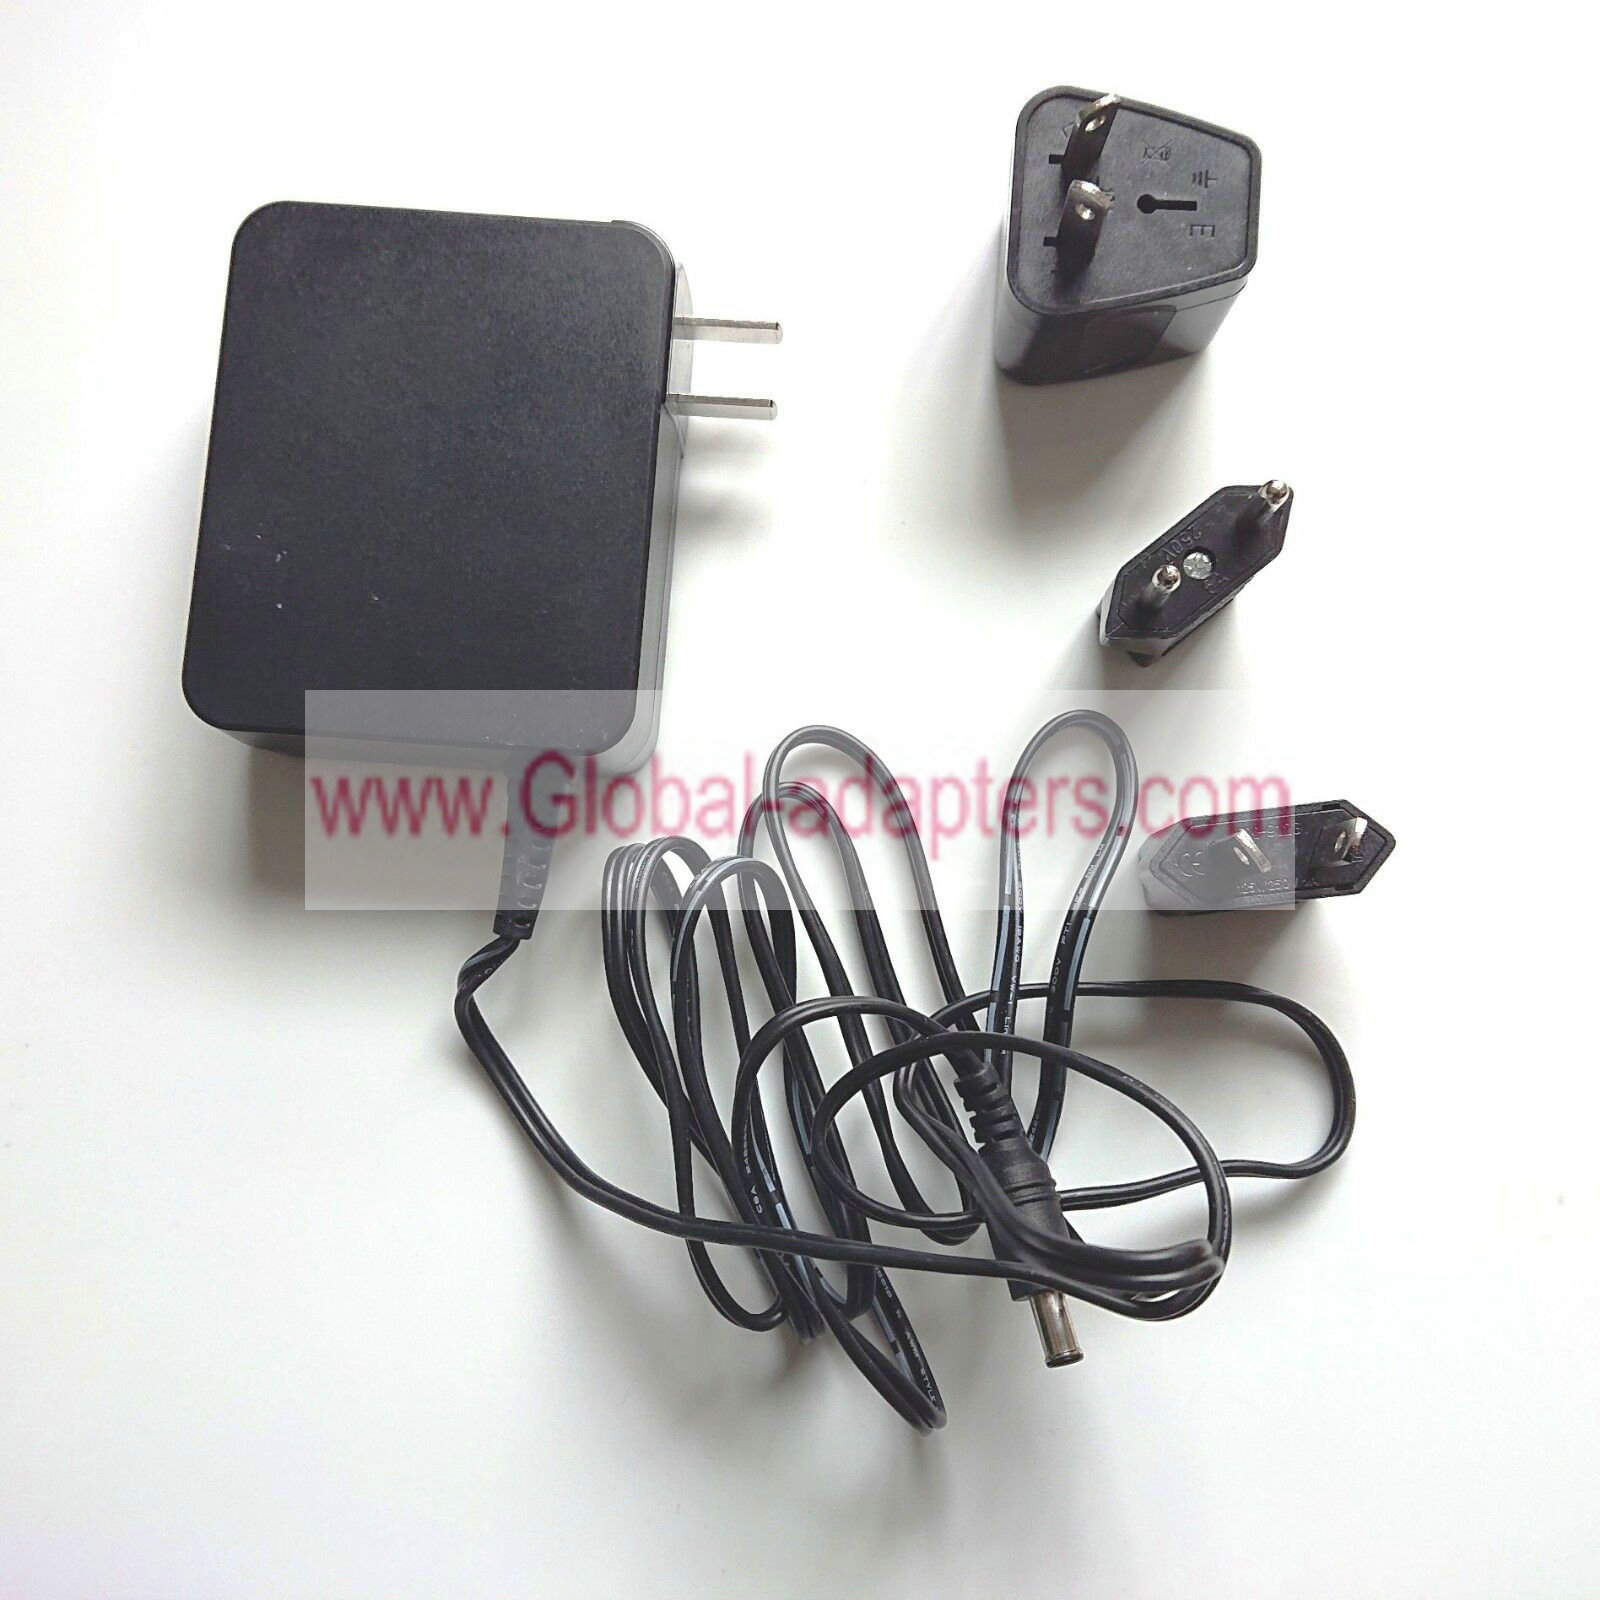 NetGear AC Adapter : laptop parts, laptop accessory